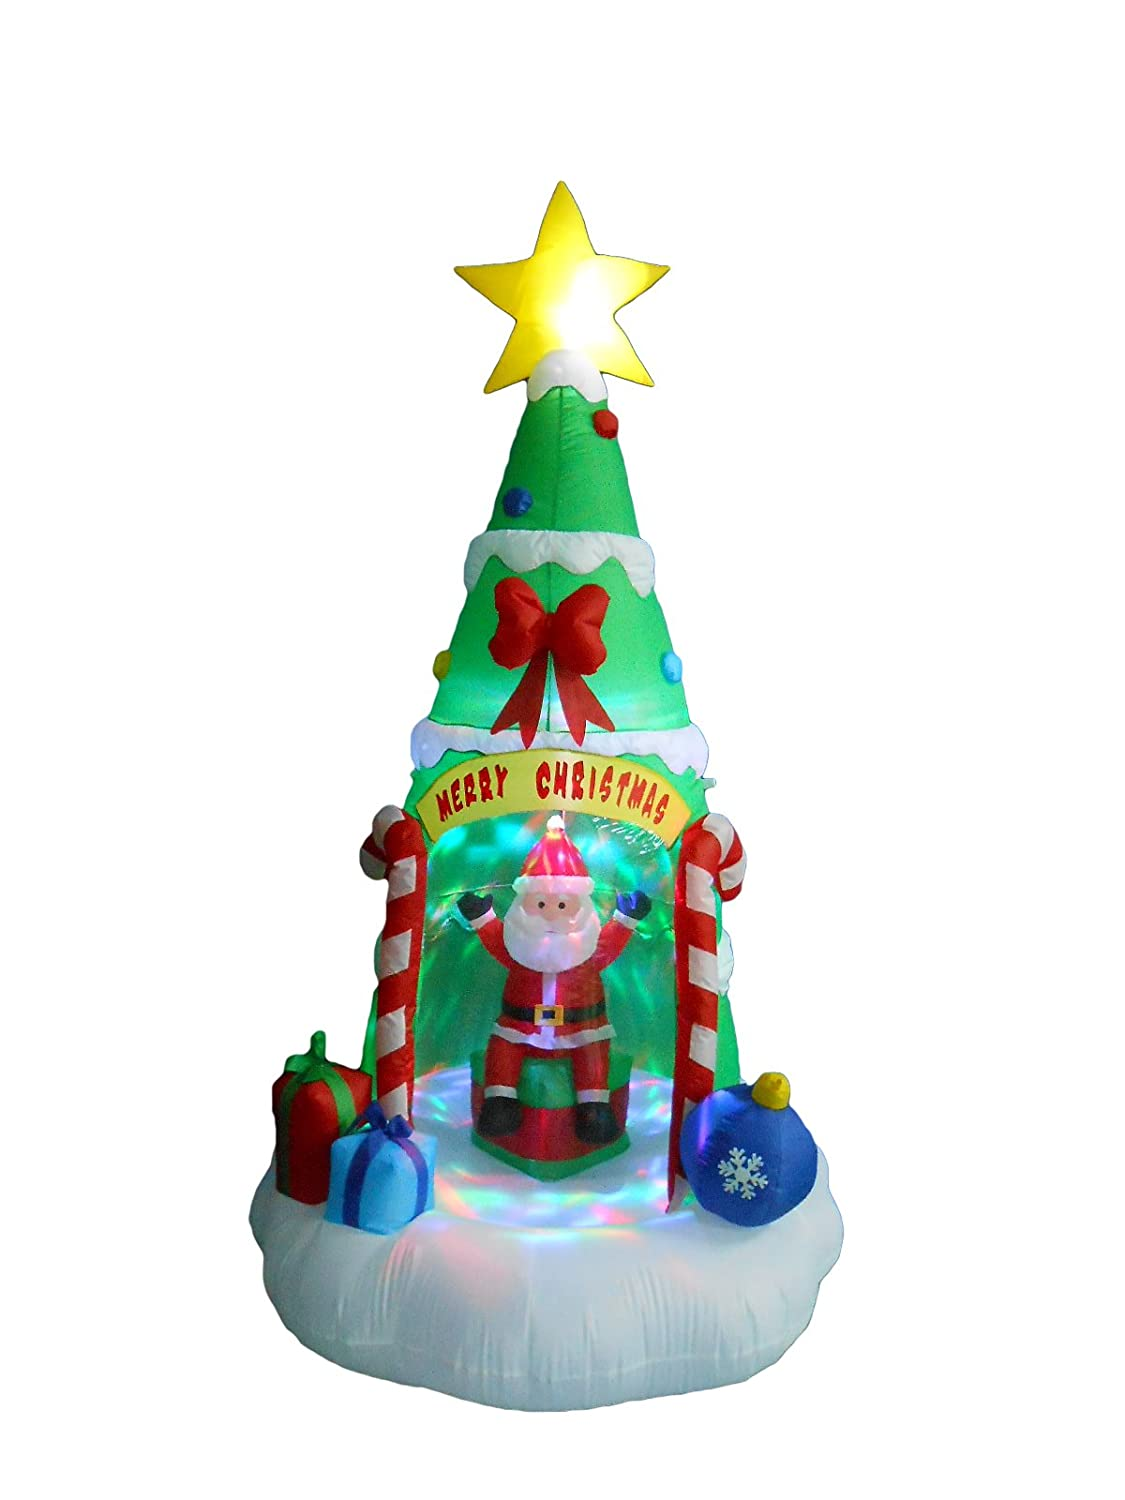 Amazon.com: 8 Foot Tall Lighted Inflatable Christmas Tree with Santa ...